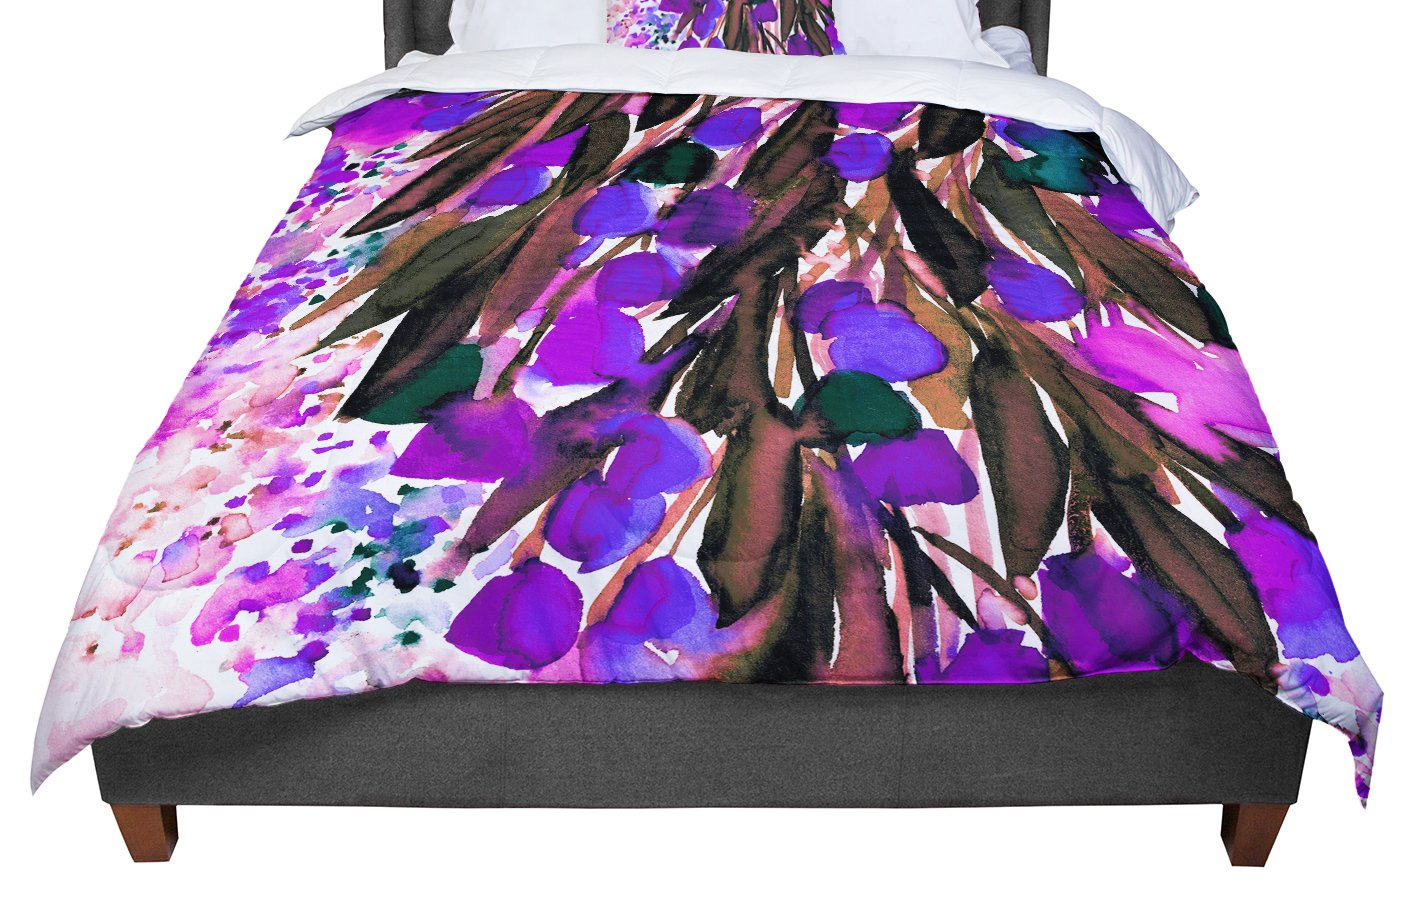 88 X 88 KESS InHouse Laura Escalante Midnight Florals Black Sunflower Queen Comforter